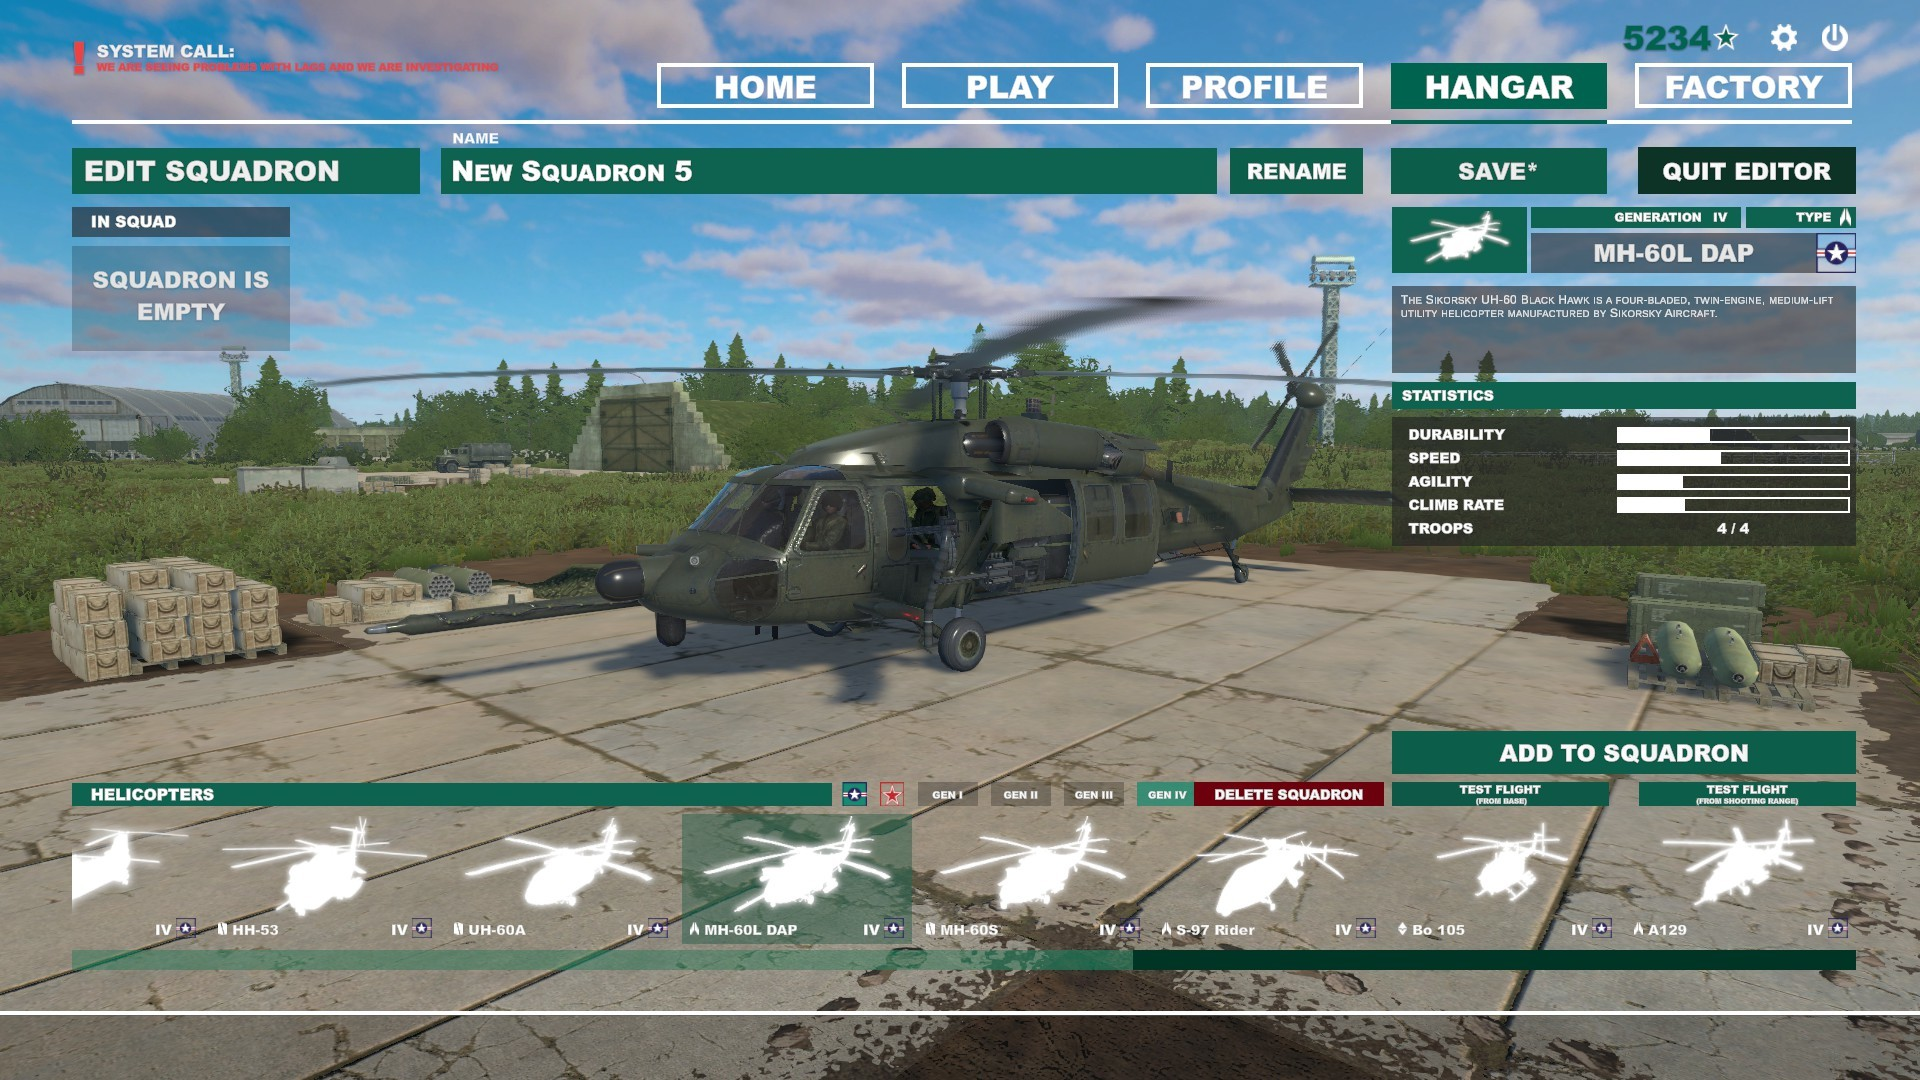 Find the best laptop for Heliborne - Enhanced Edition